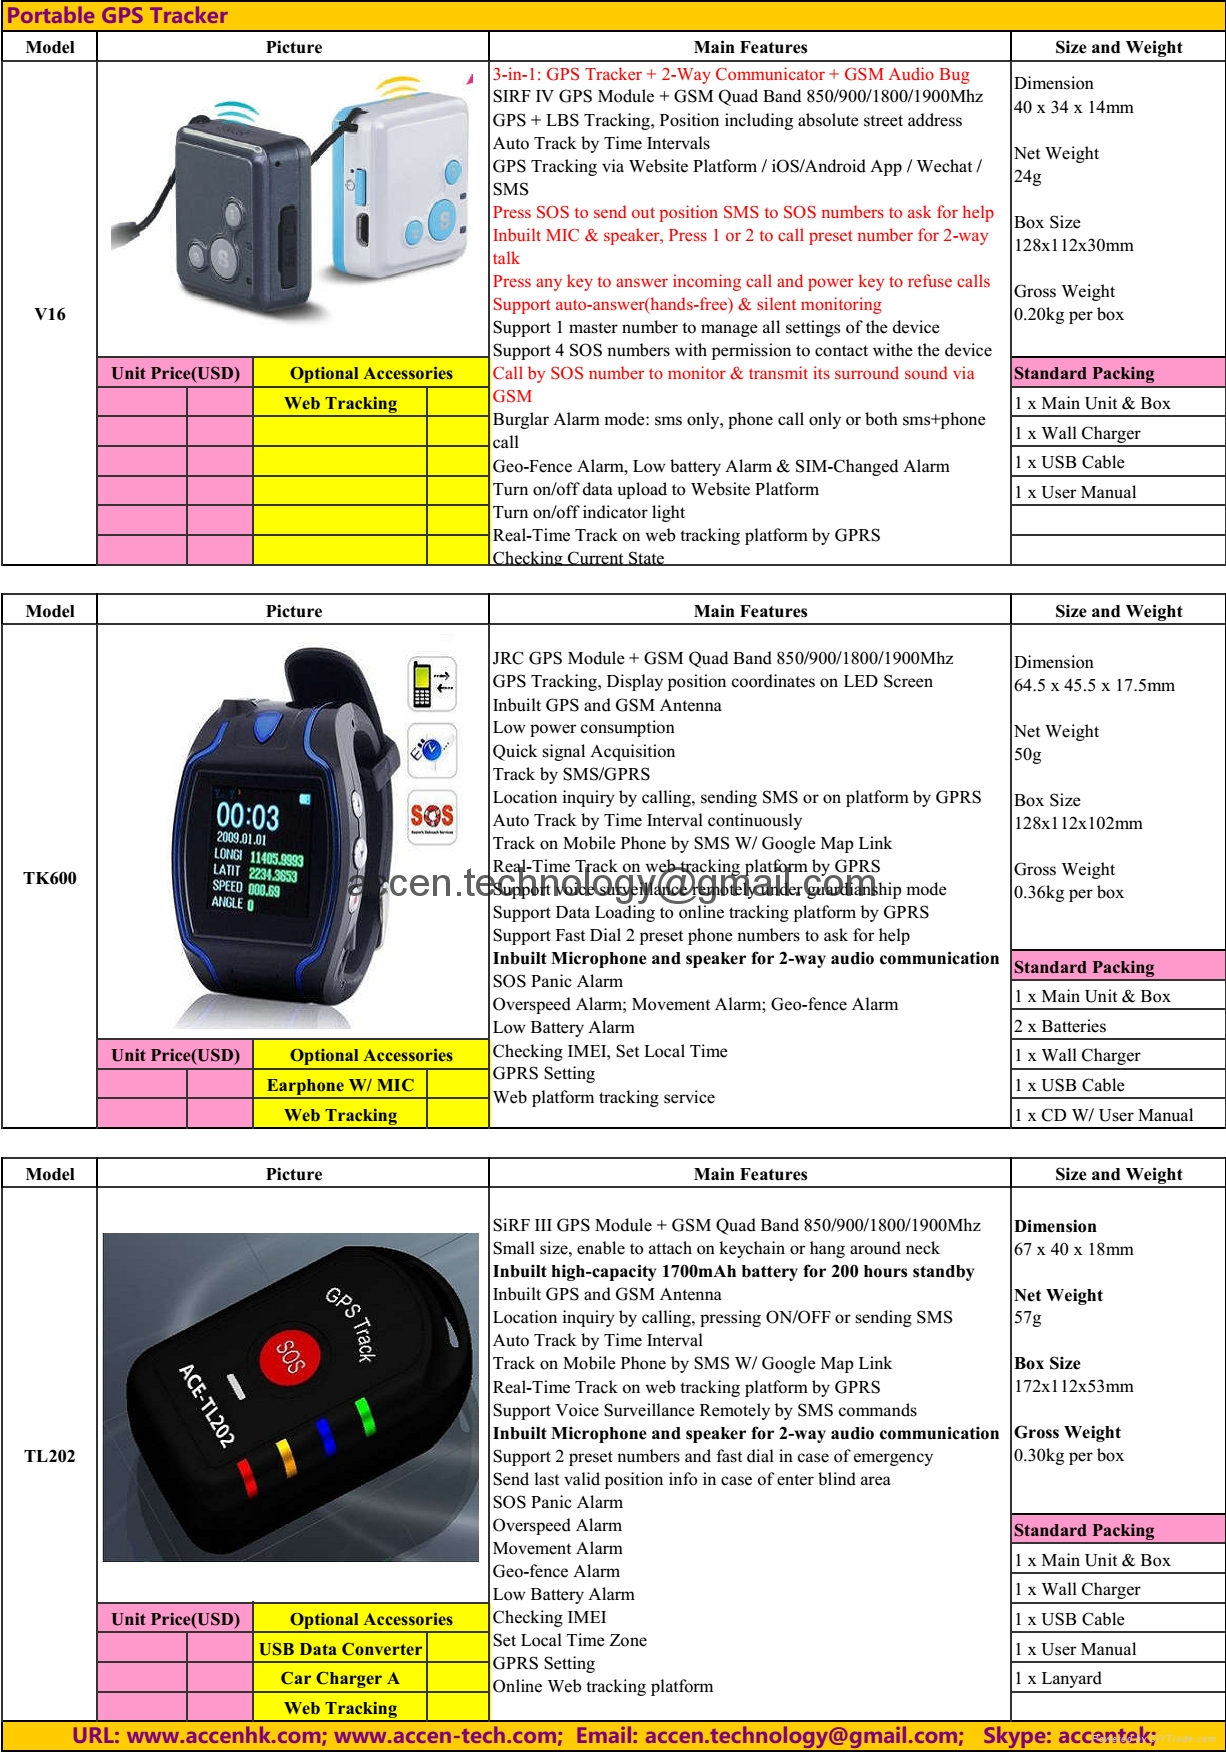 V16 GPS Tracker + 2-Way SOS Communicator Wrist Watch GPS Tracker with coordinates display